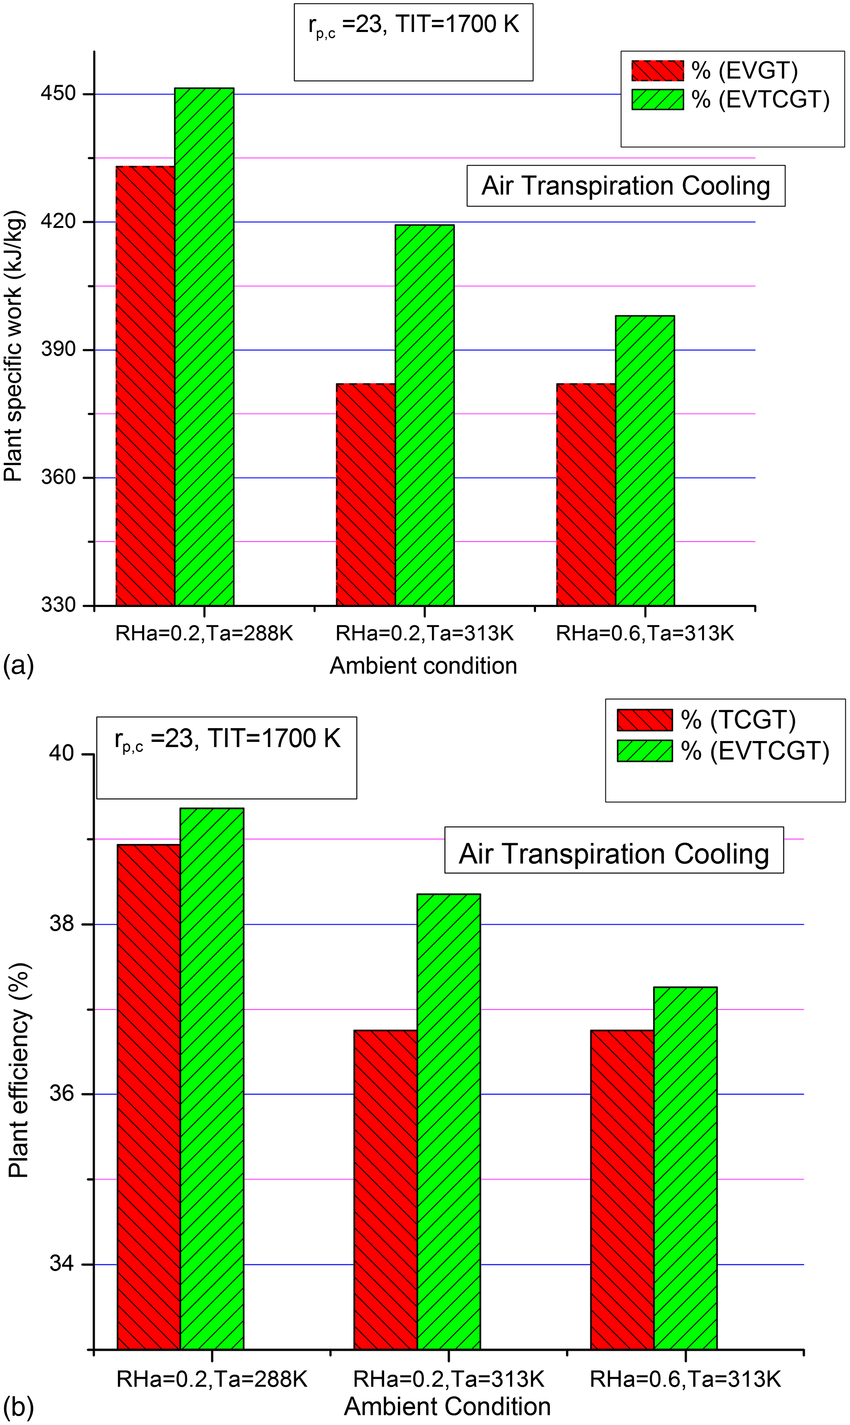 hight resolution of  a effect of ambient temperature on temperature drop across humidifier plant specific work and plant efficiency for evtcgt cycle b effect of ambient